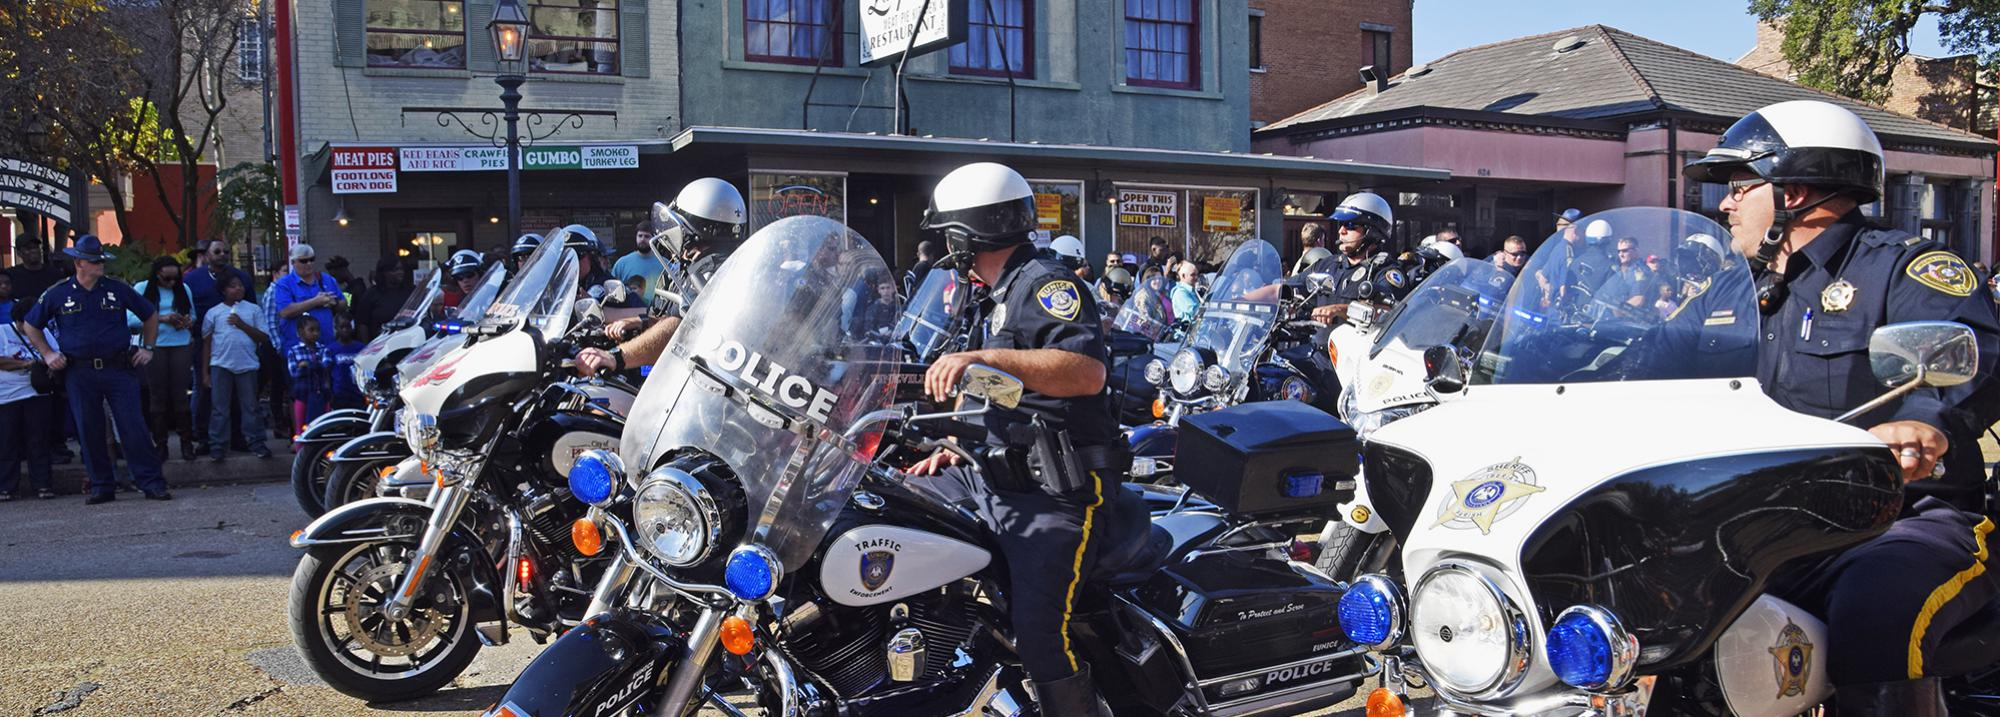 Police Protection | City of Natchitoches, Louisiana